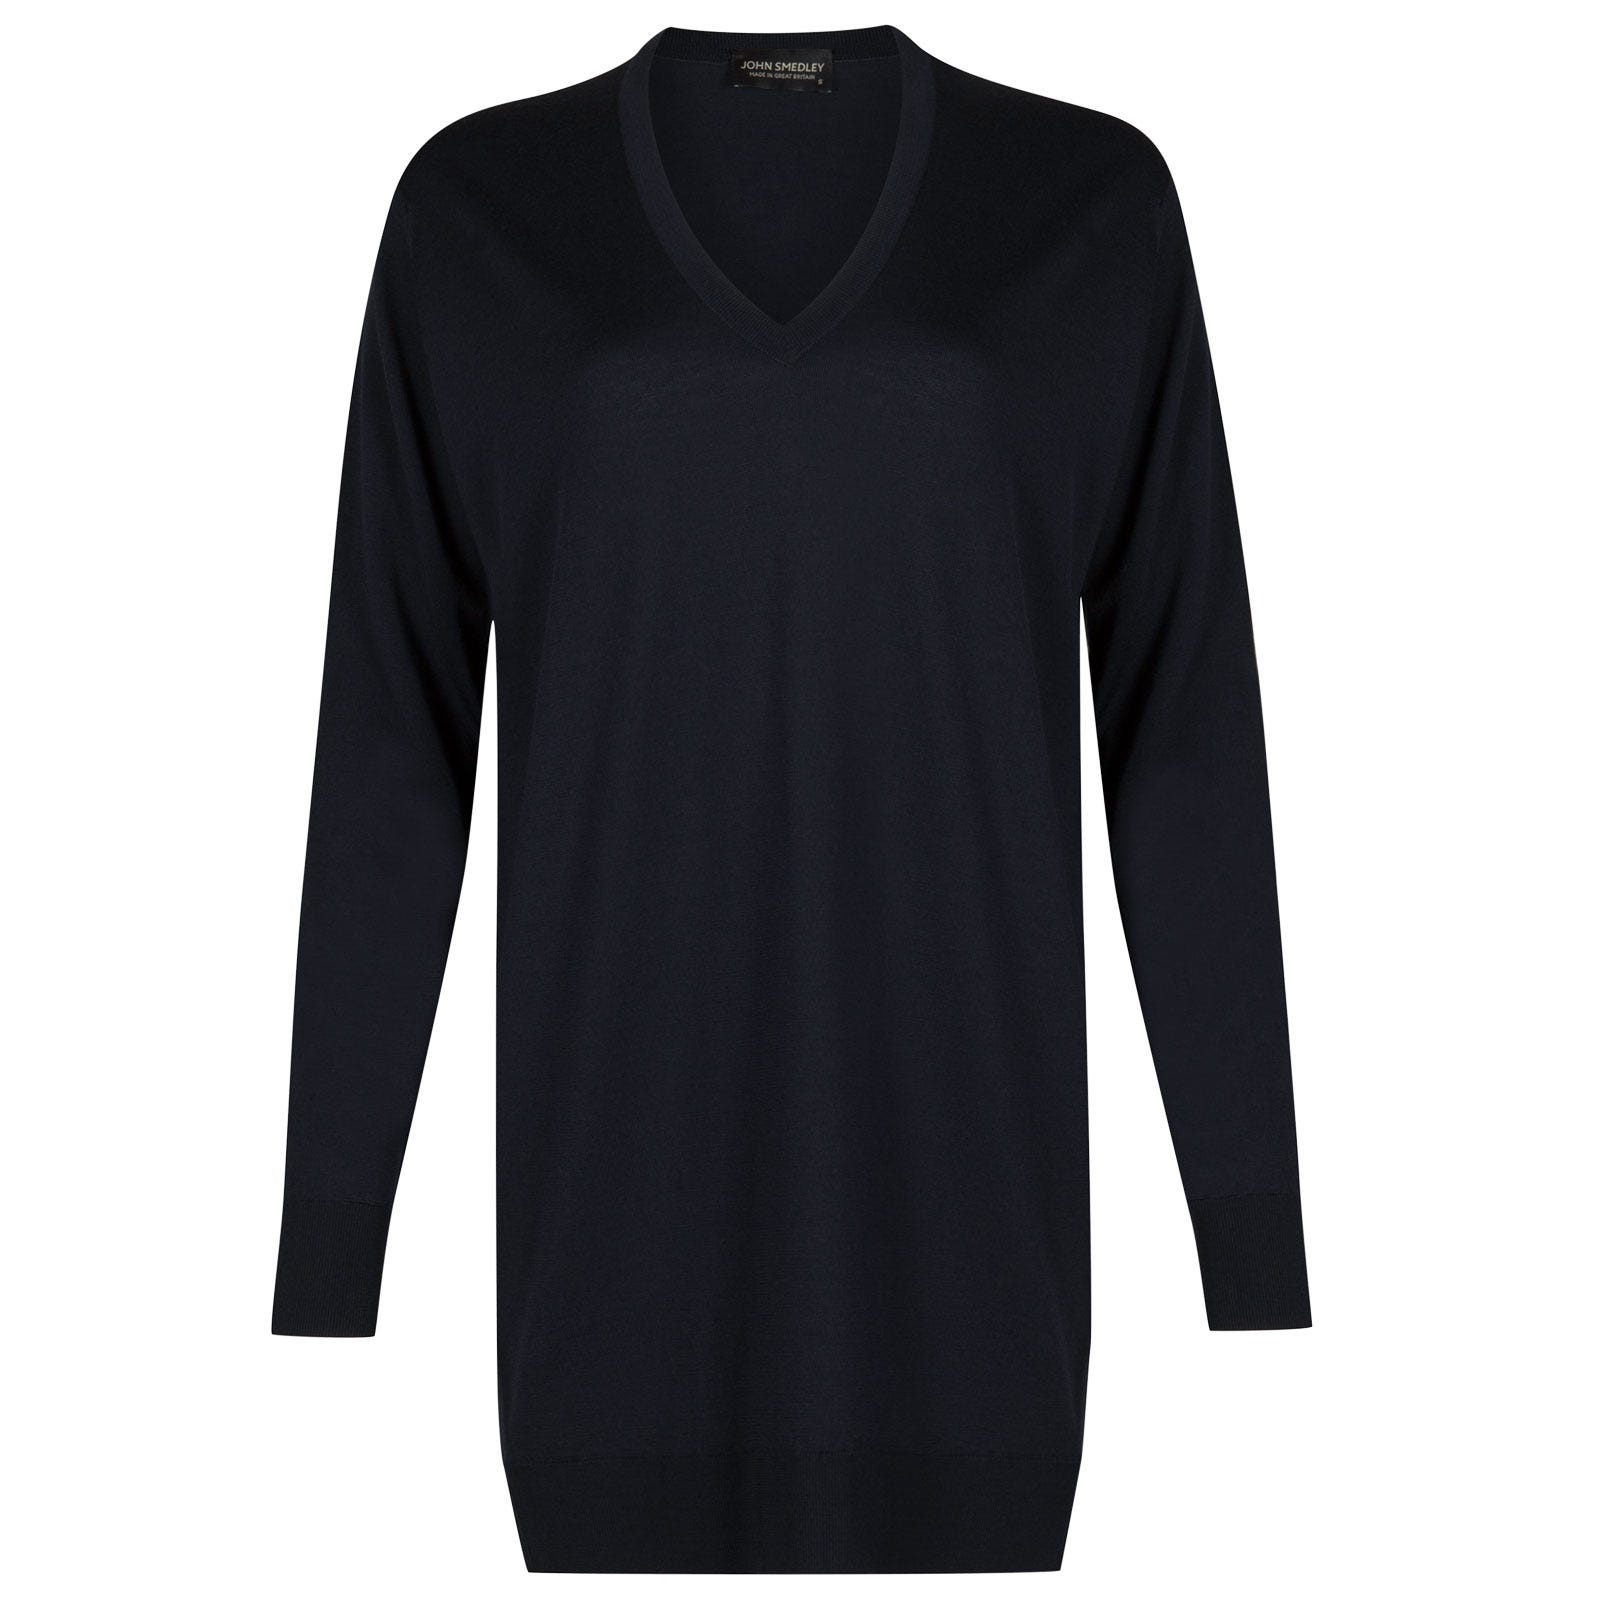 John Smedley Alma Merino Wool Sweater in Midnight-M